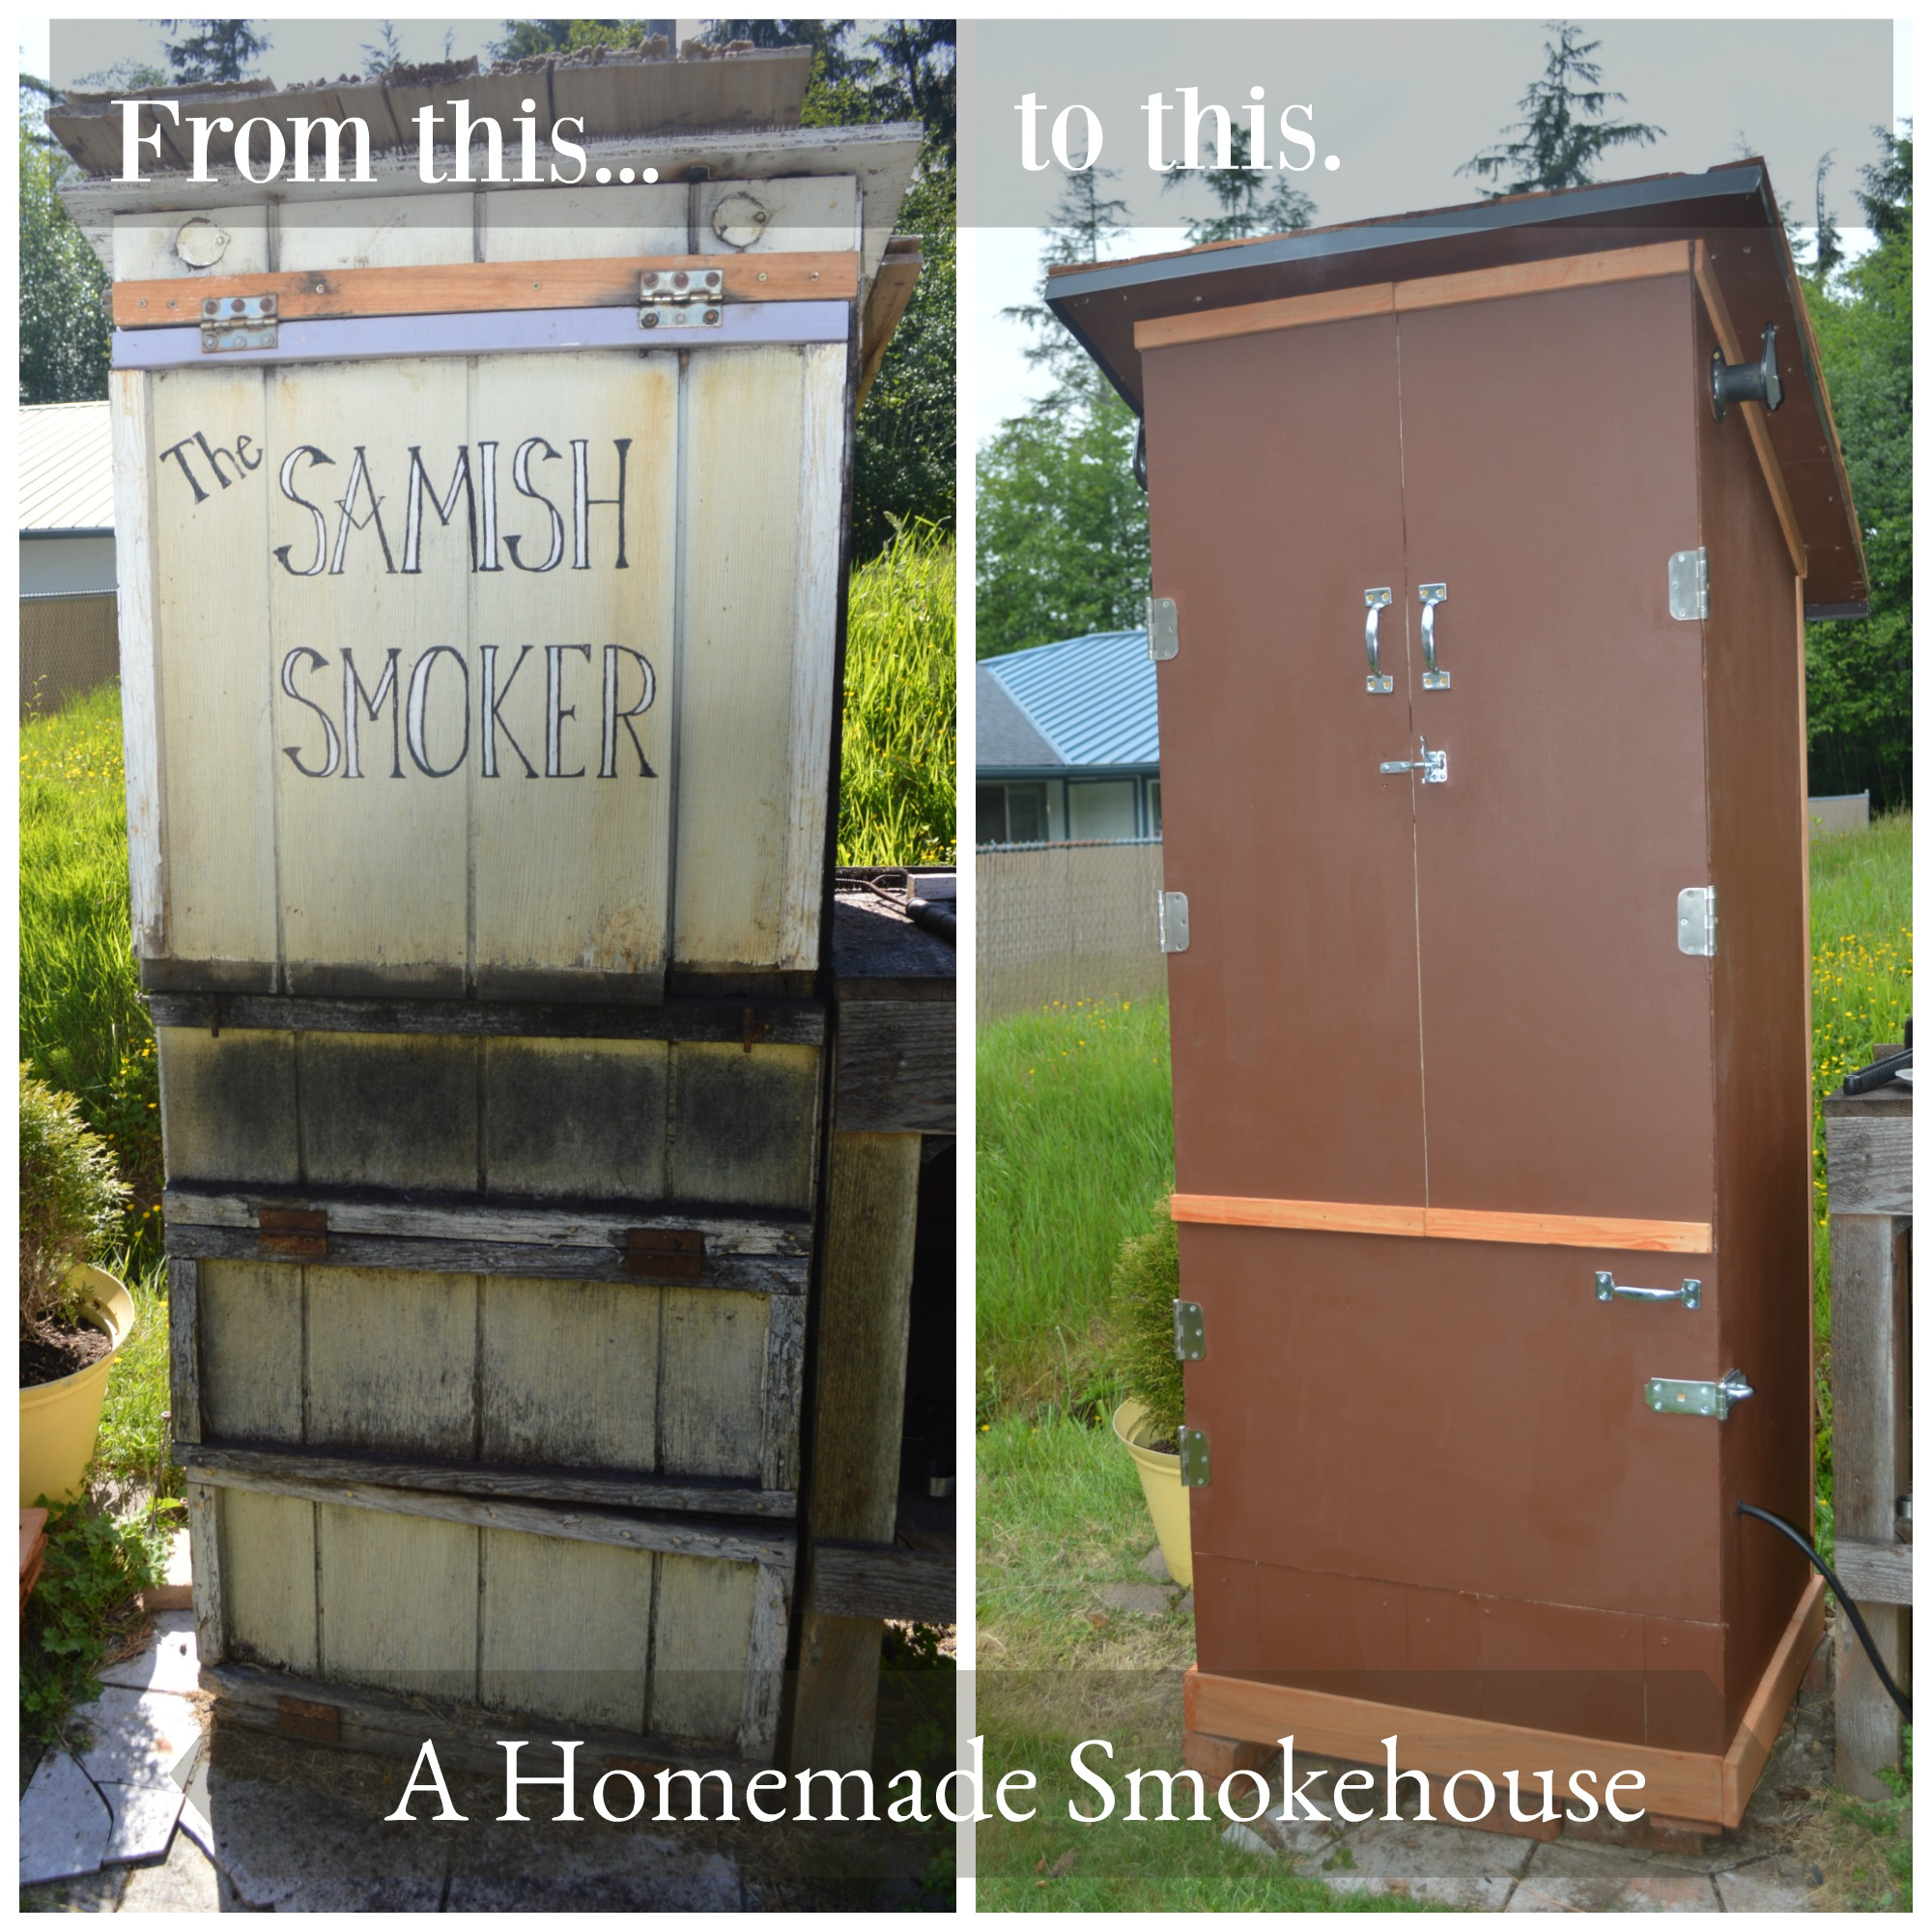 Be inspired to build your own smokehouse #homestead #smokehouses.jpg